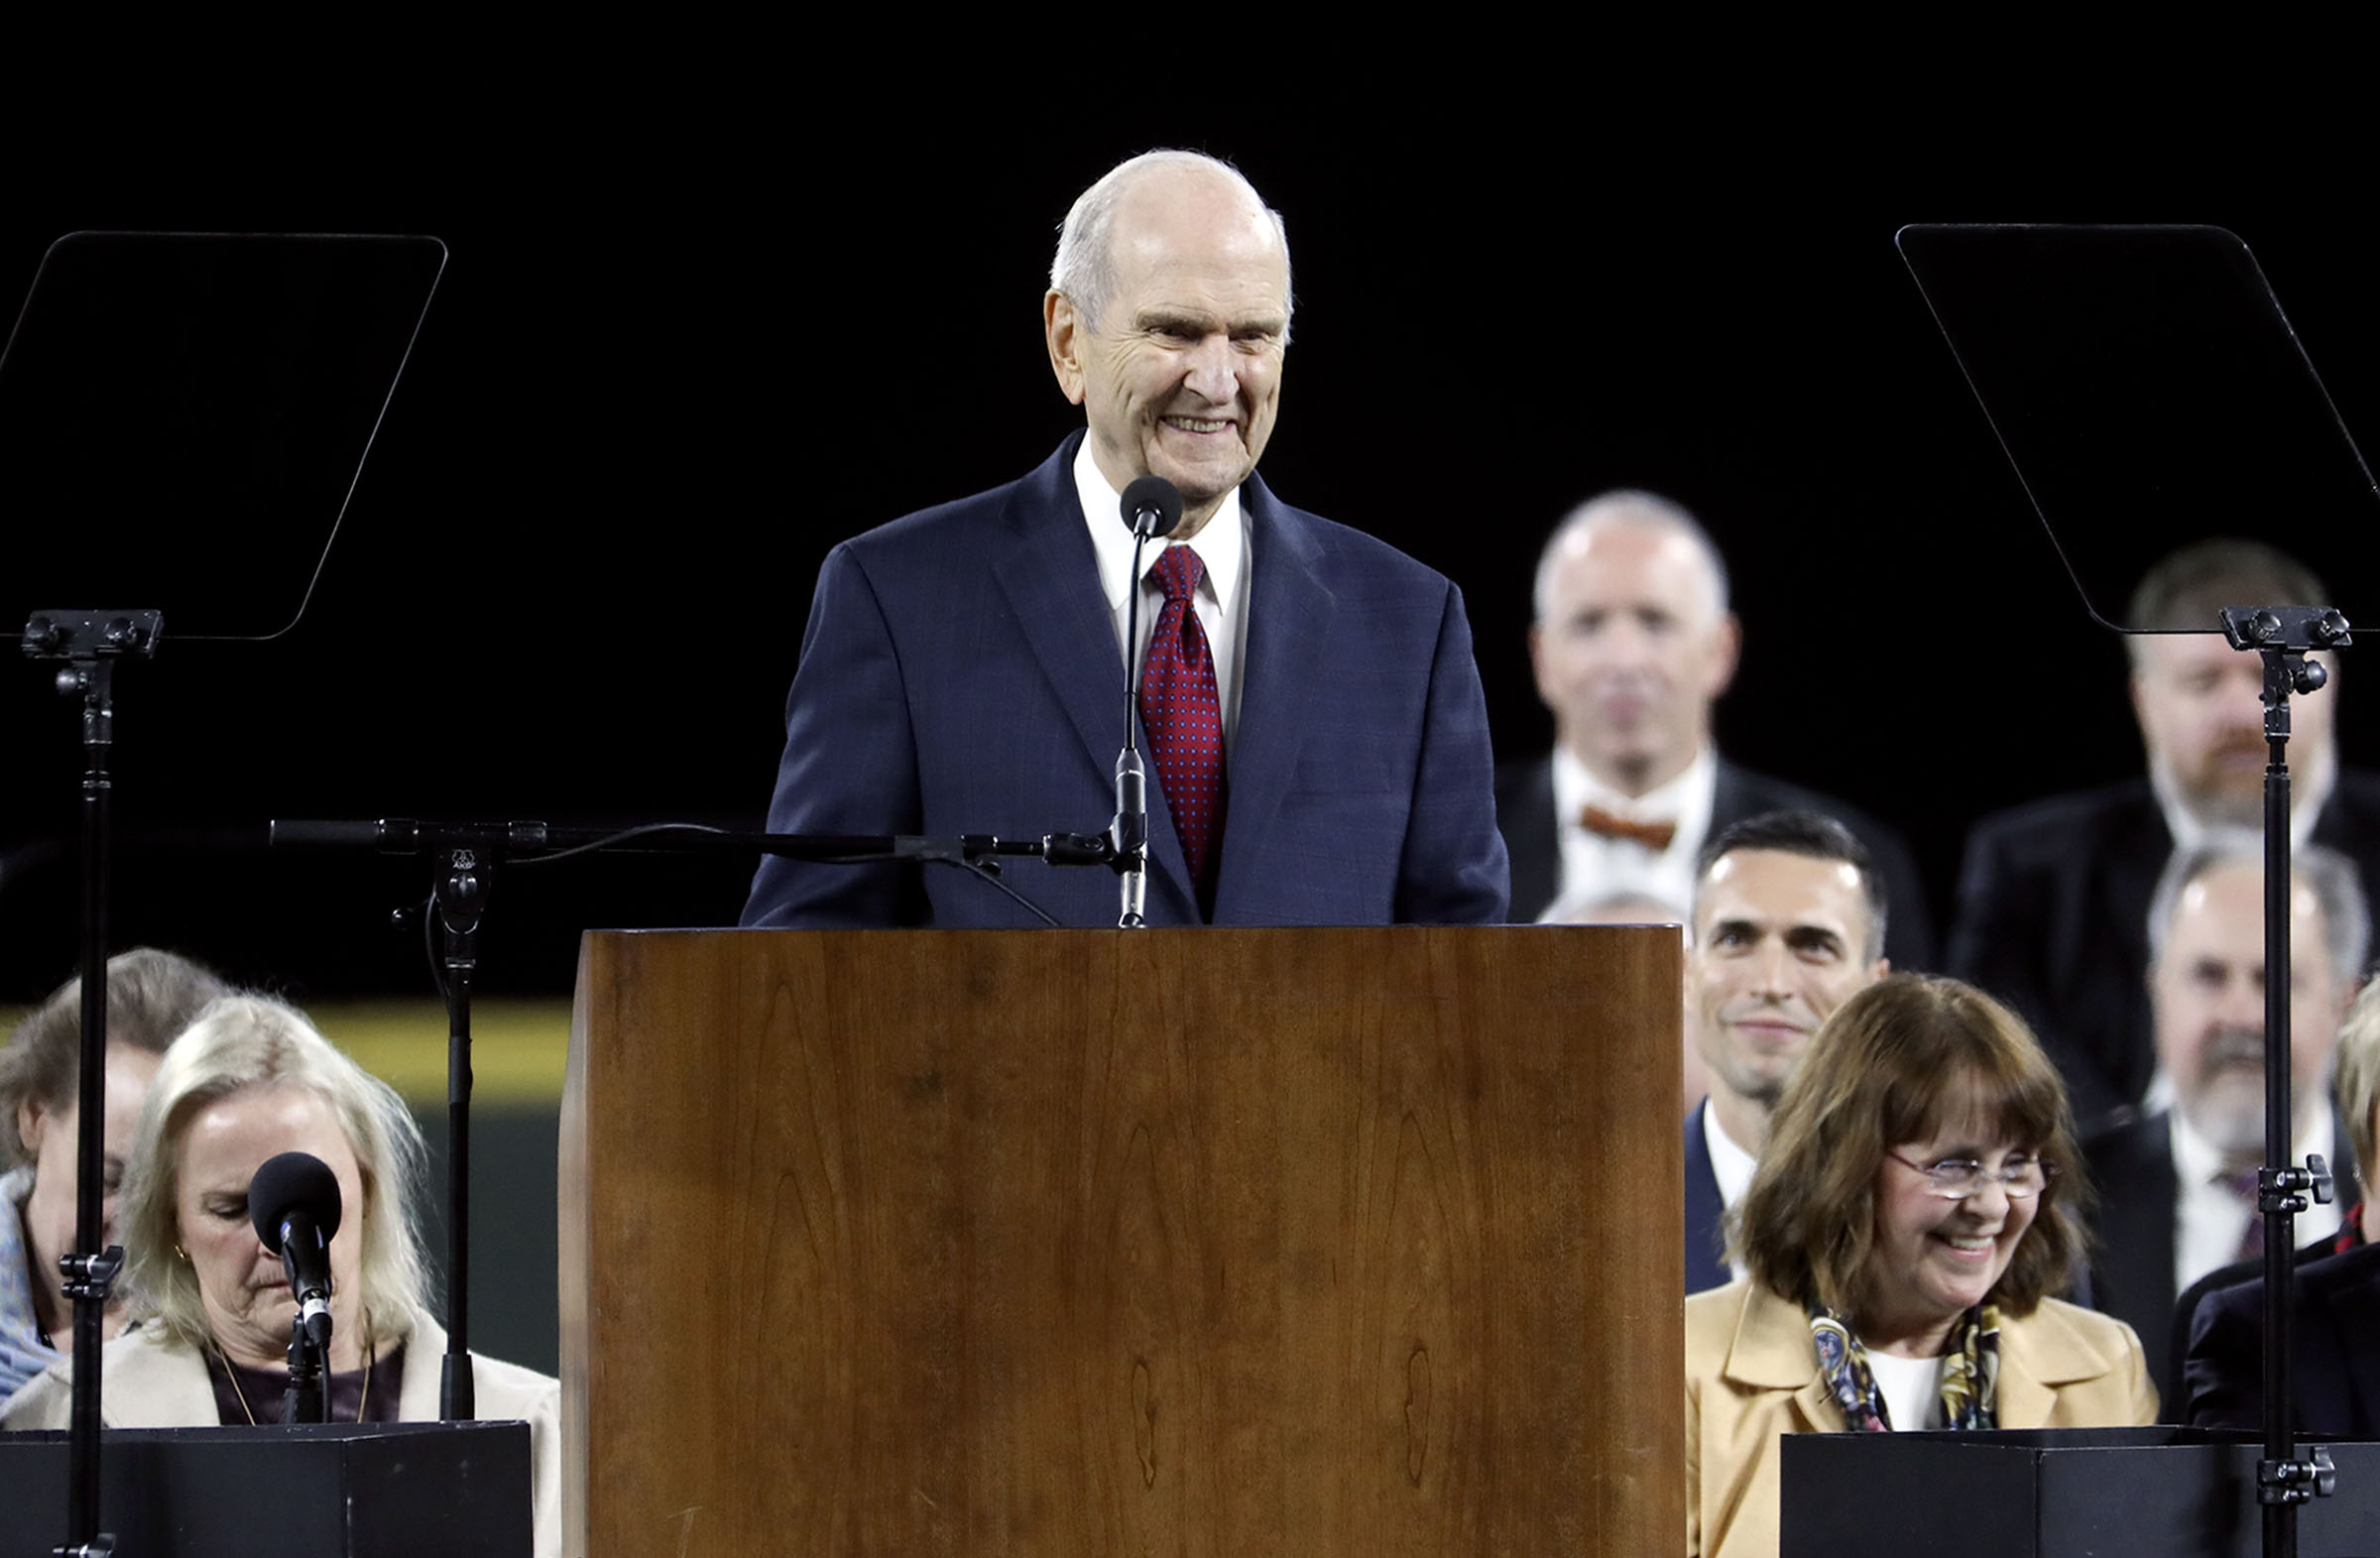 President Russell M. Nelson of The Church of Jesus Christ of Latter-day Saints speaks at Safeco Field in Seattle, Wash., on Saturday, Sept. 15, 2018.